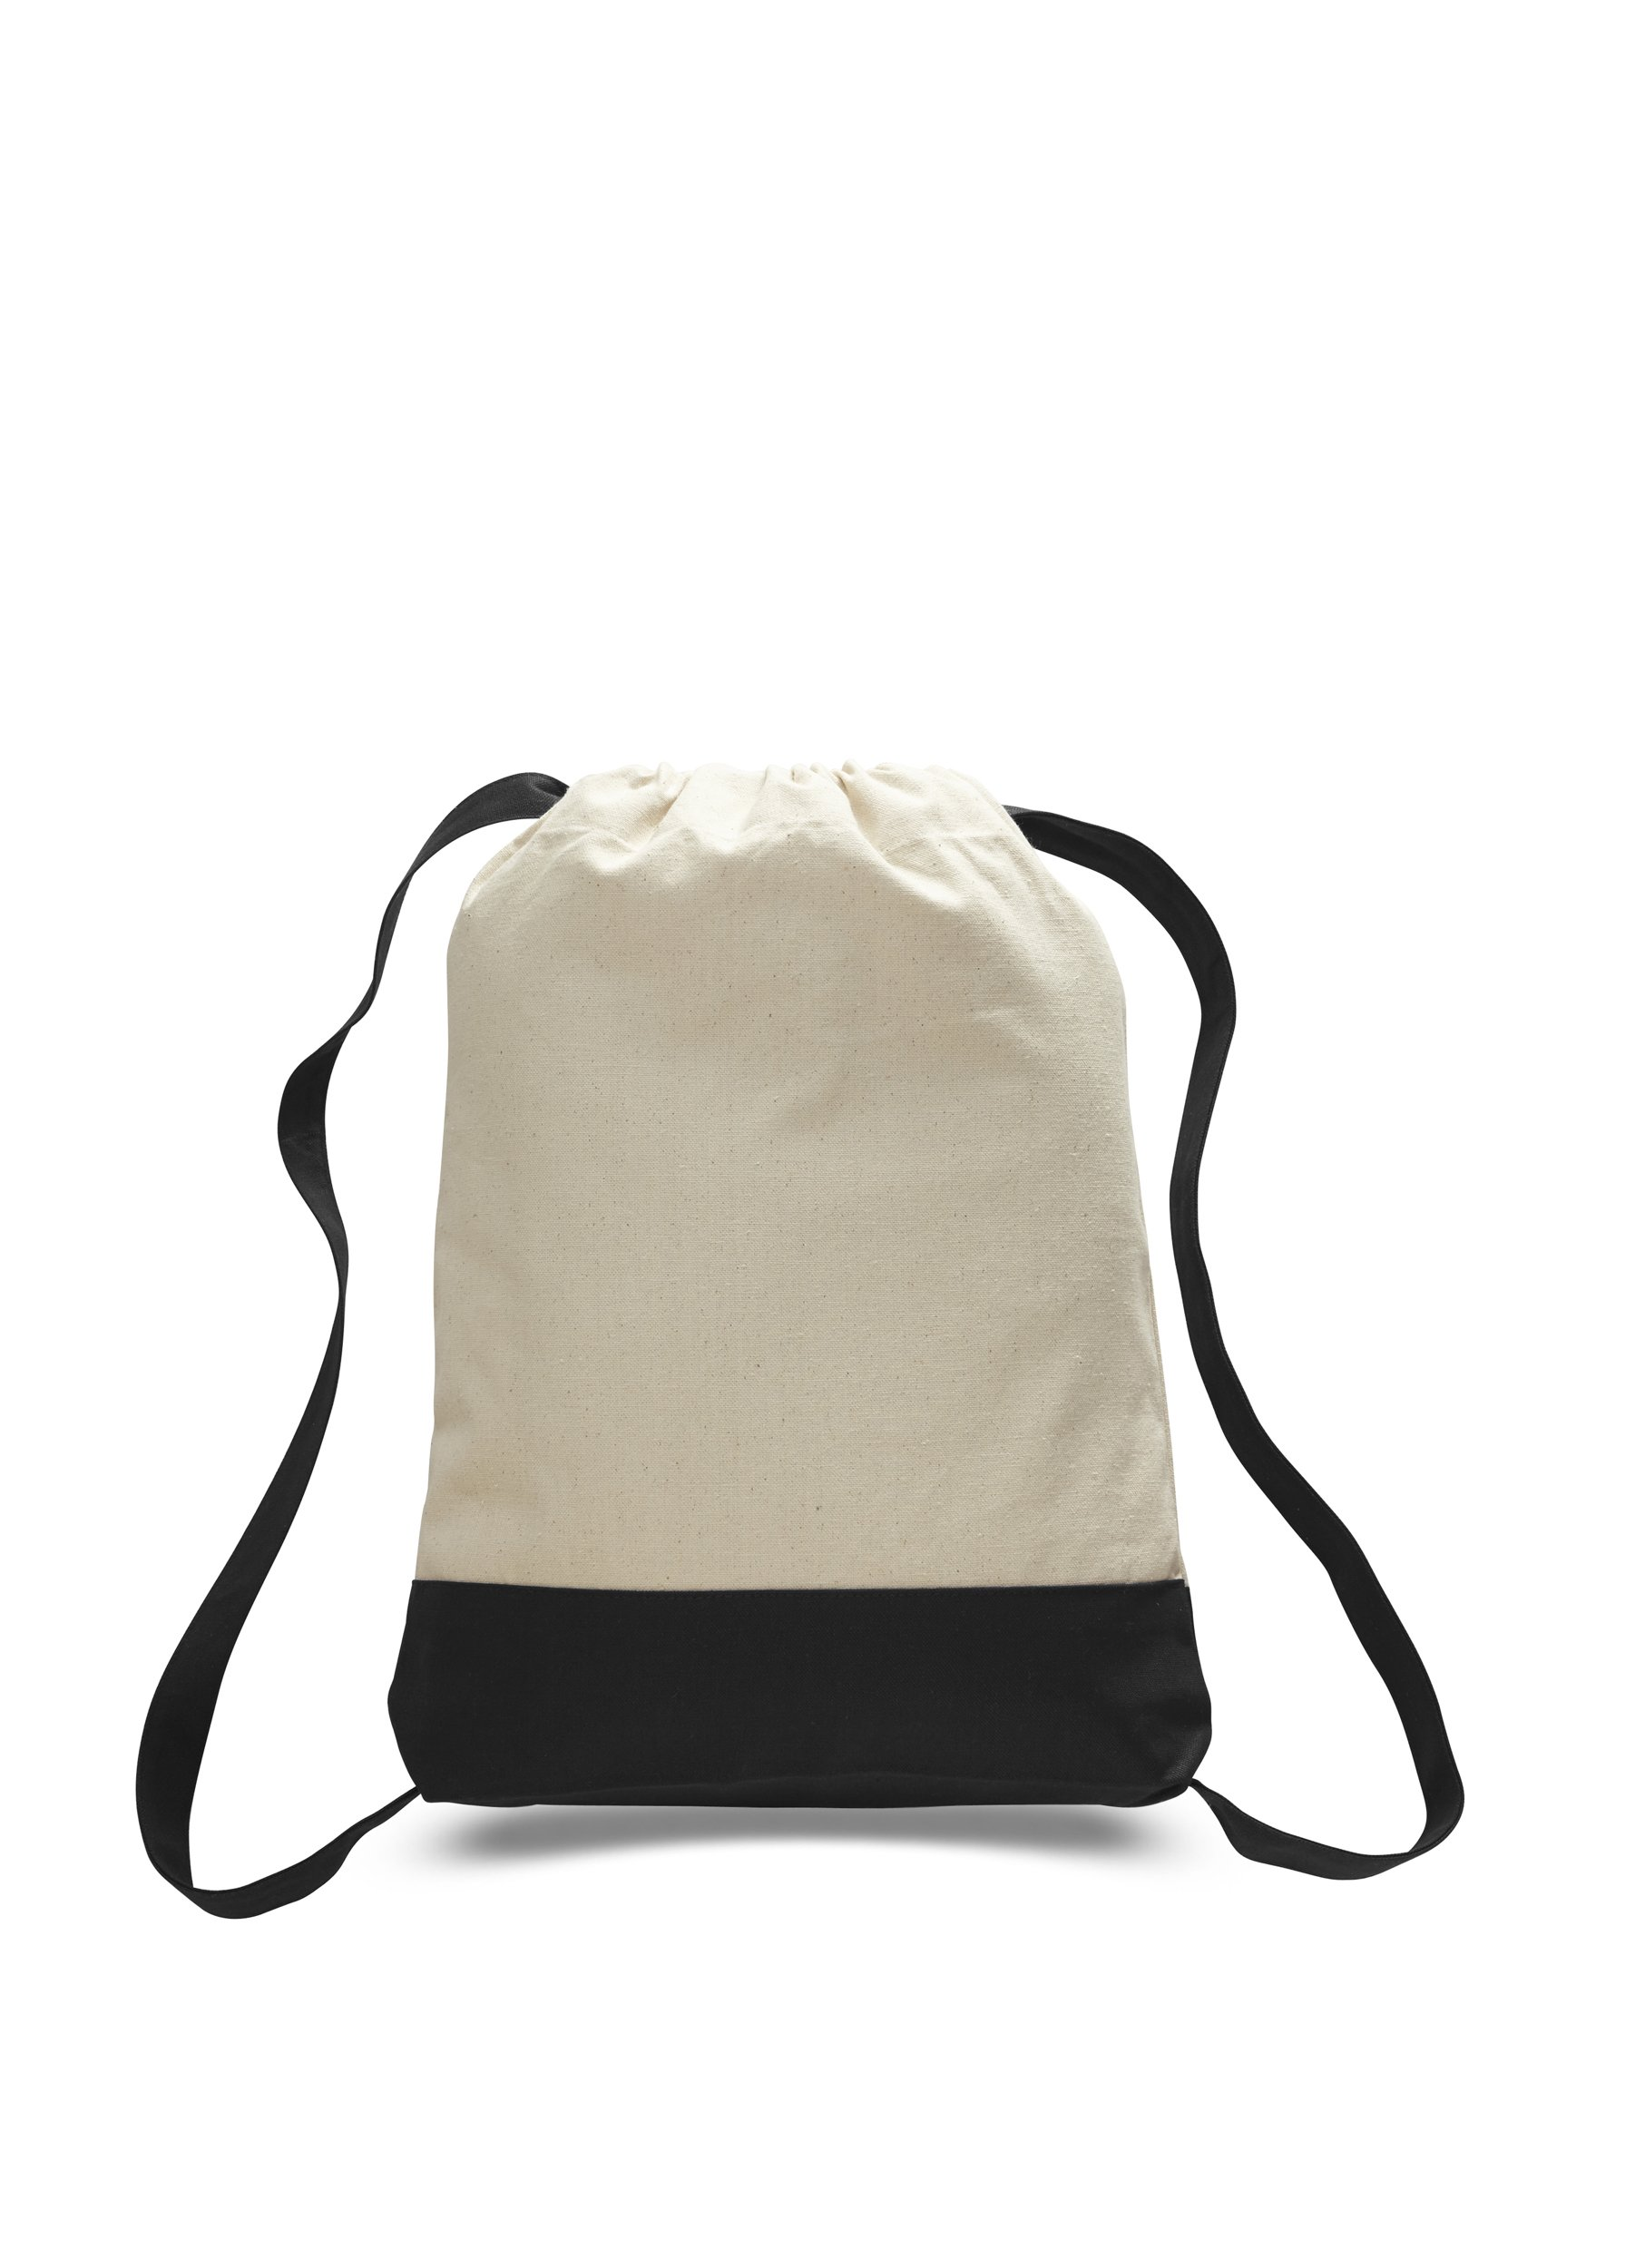 Pack of 12 - Durable Canvas Backpack Bags Two Tone Canvas Sport Promotional Backpacks Bulk - Arts and Crafts Backpacks Sack packs with Adjustable Straps Wholesale Drawstring Bags (Black)